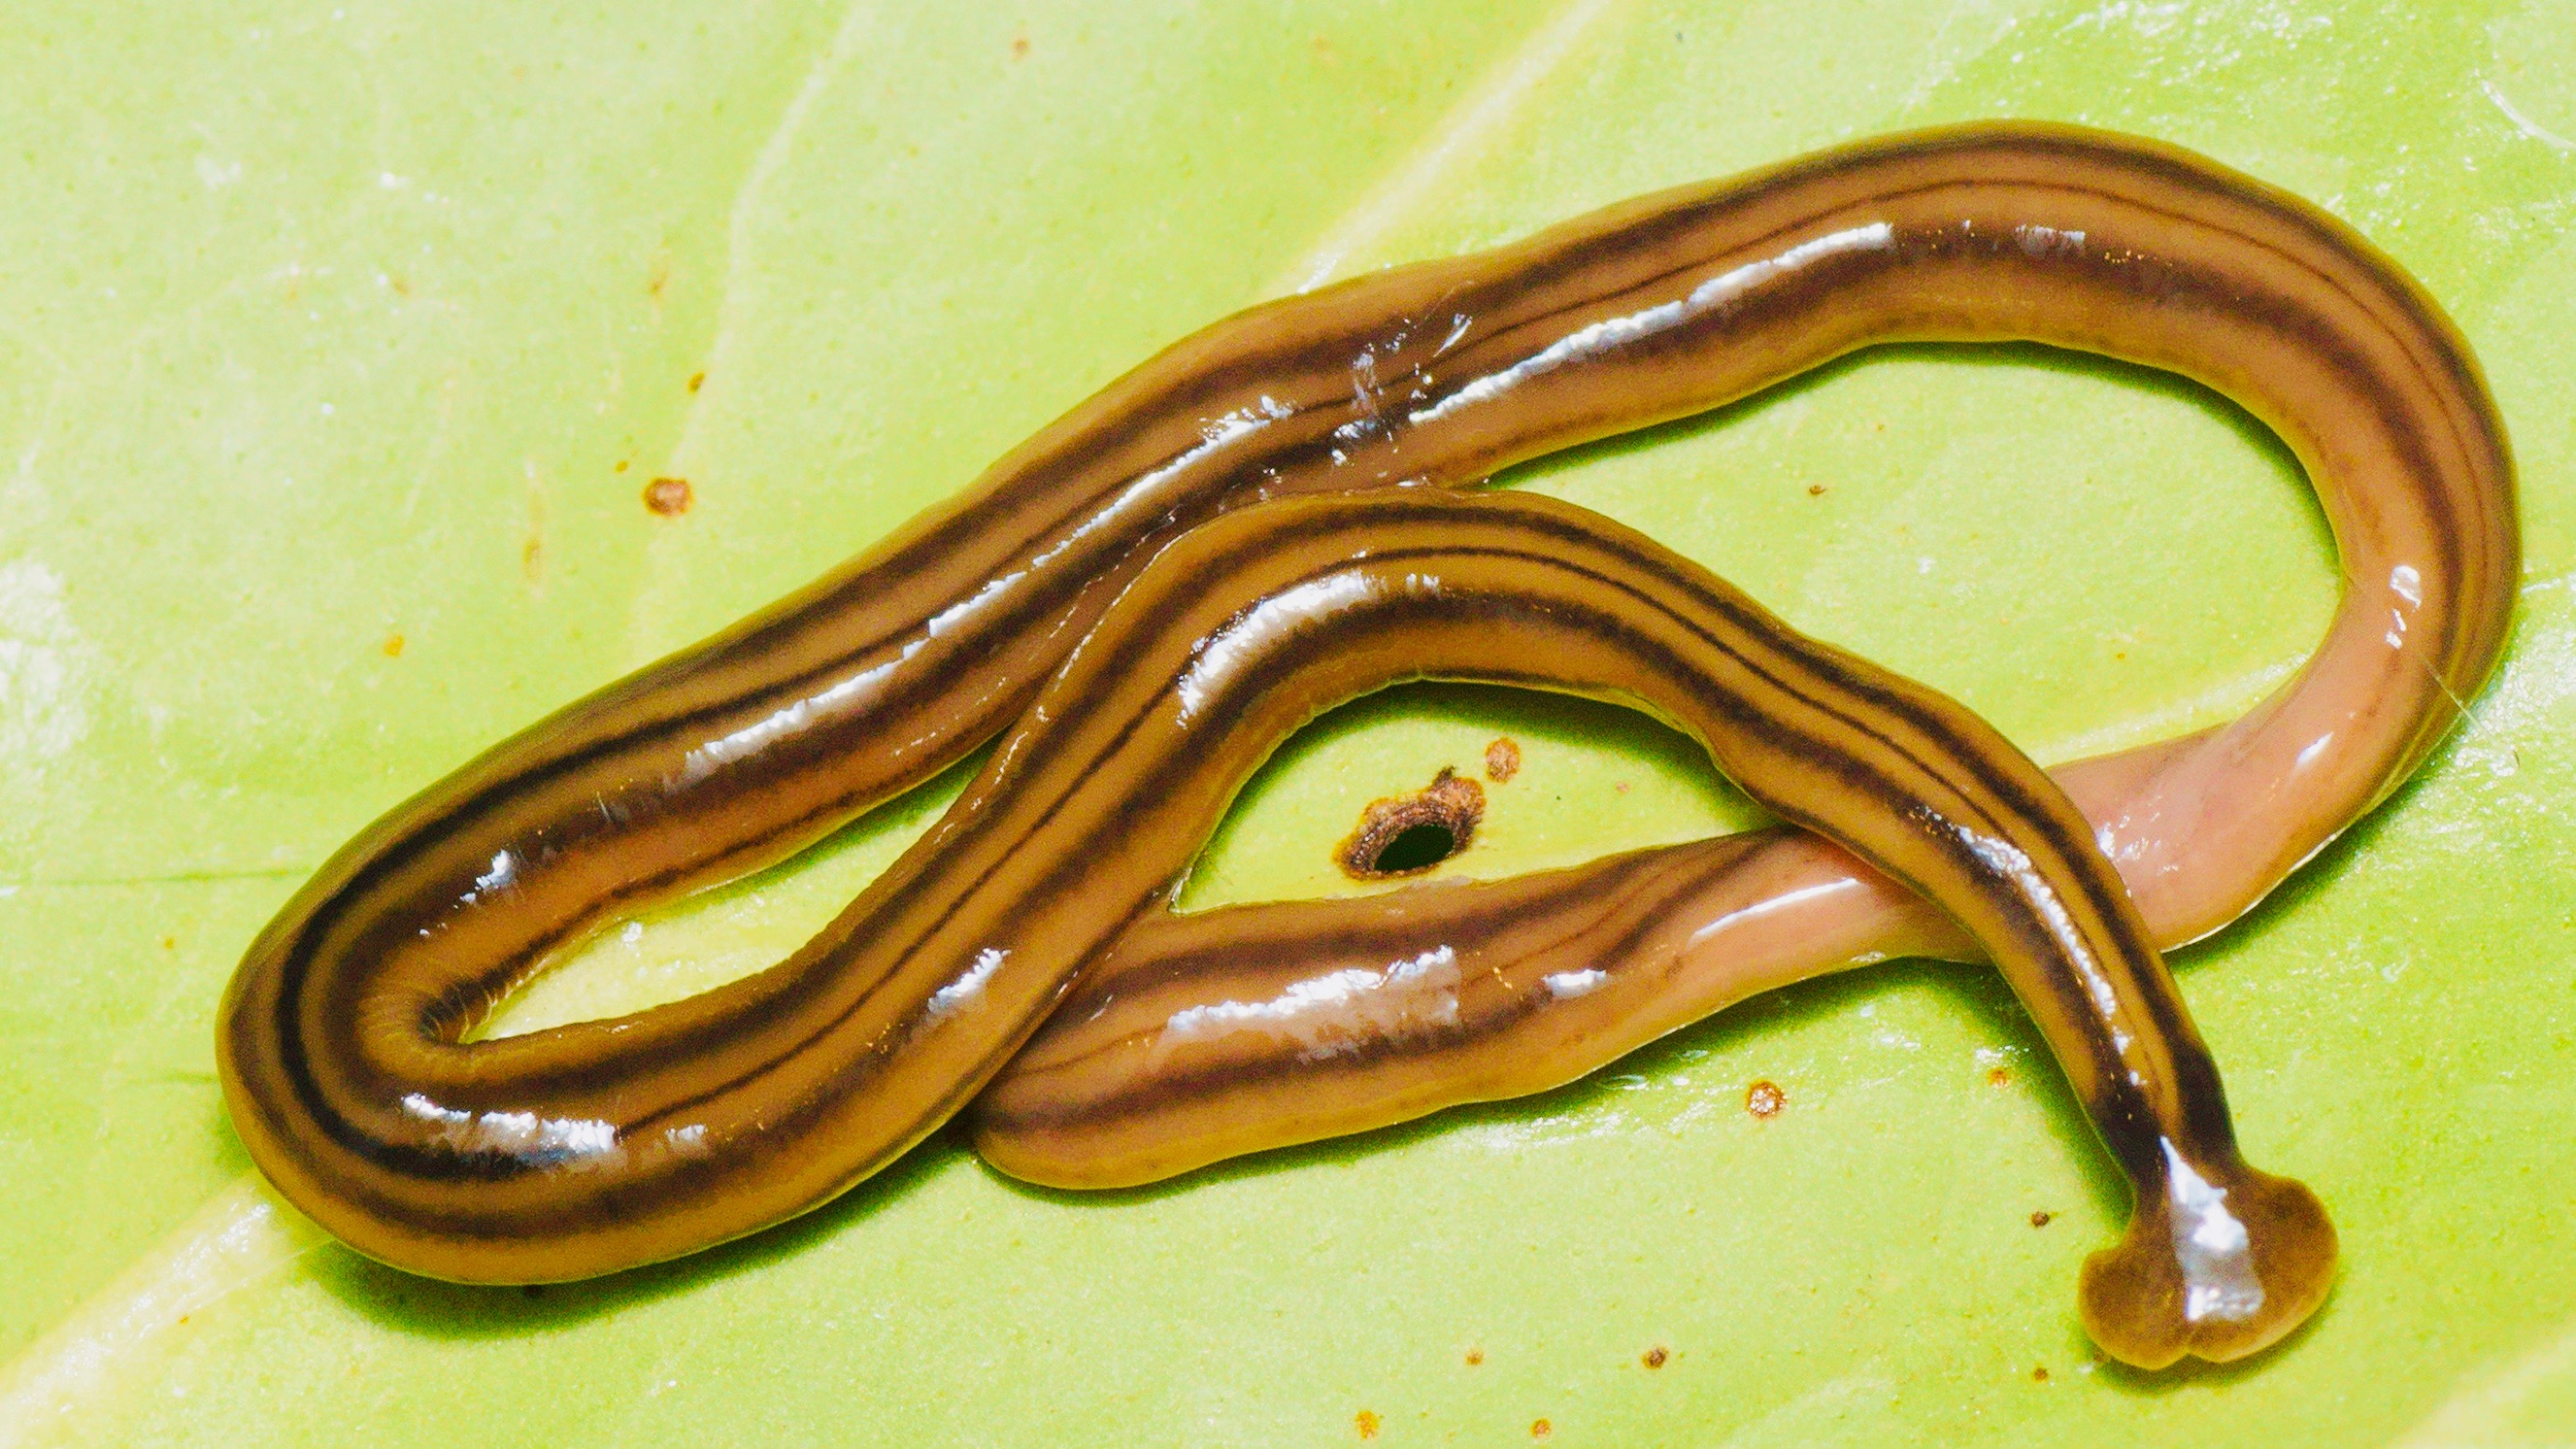 Large predatory worms invaded France, but scientists just noticed them